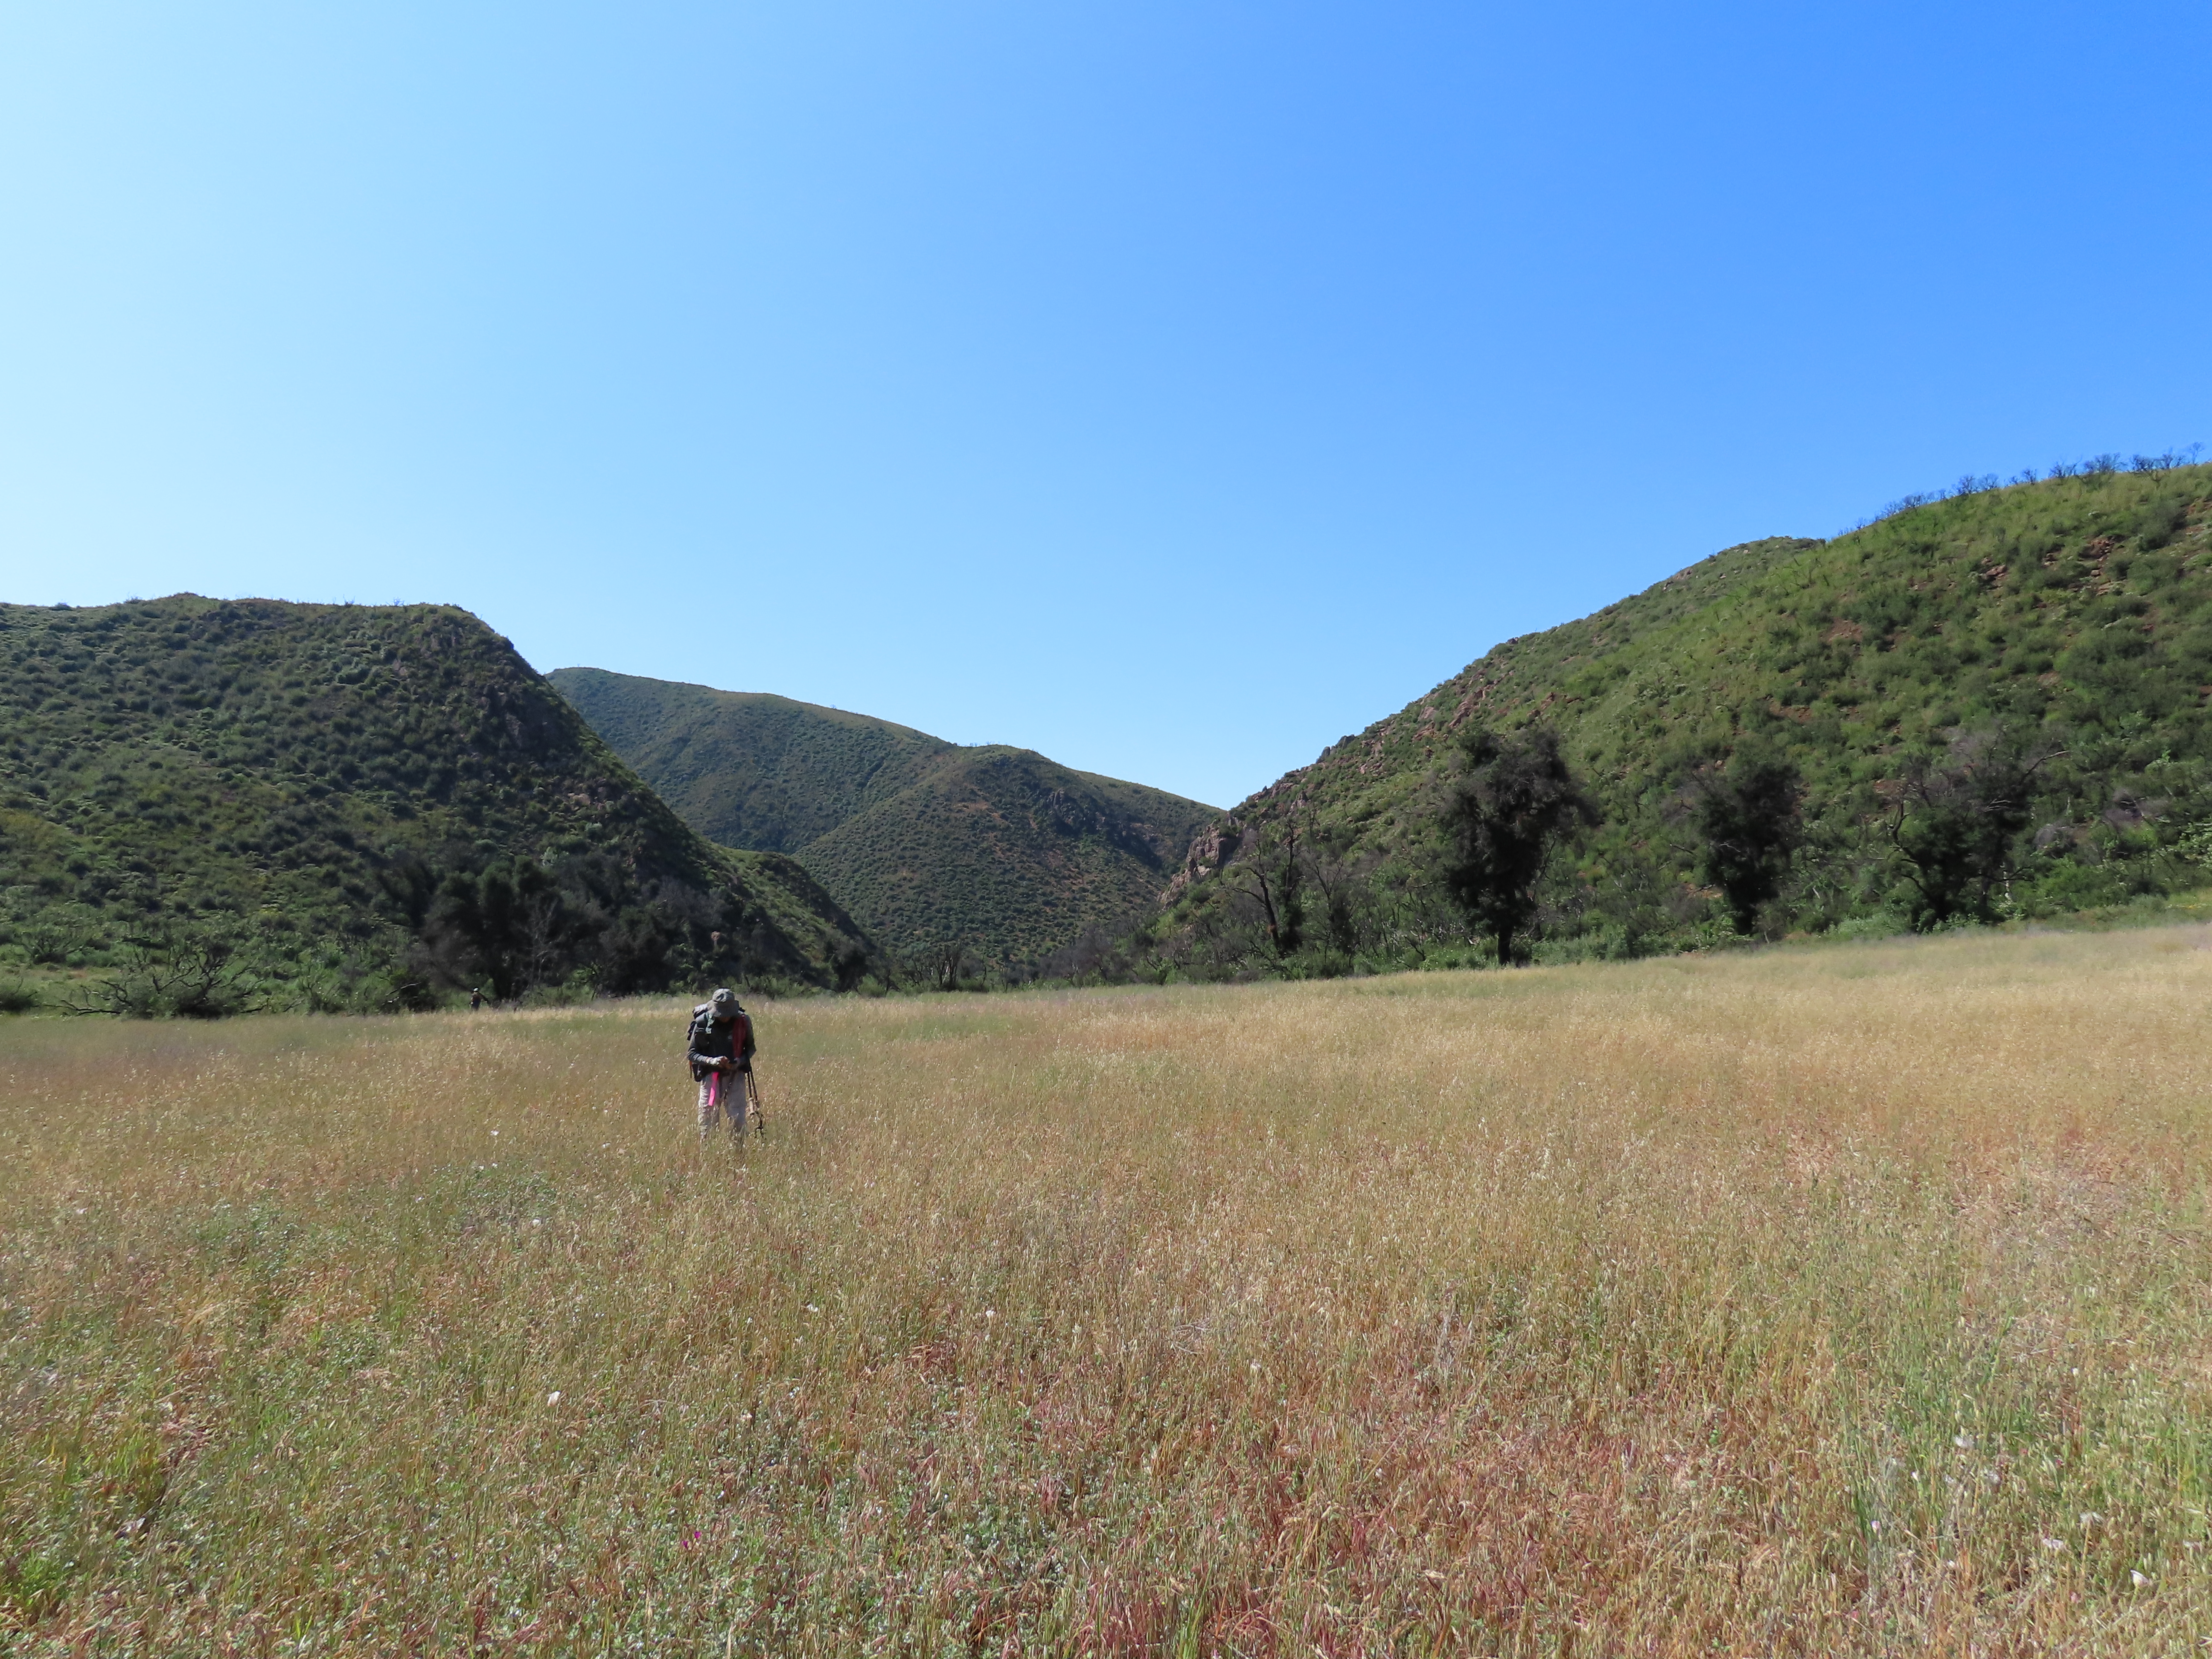 Indian Meadow hiking backpacking Dick Smith Wilderness Los Padres Natioanl Forest